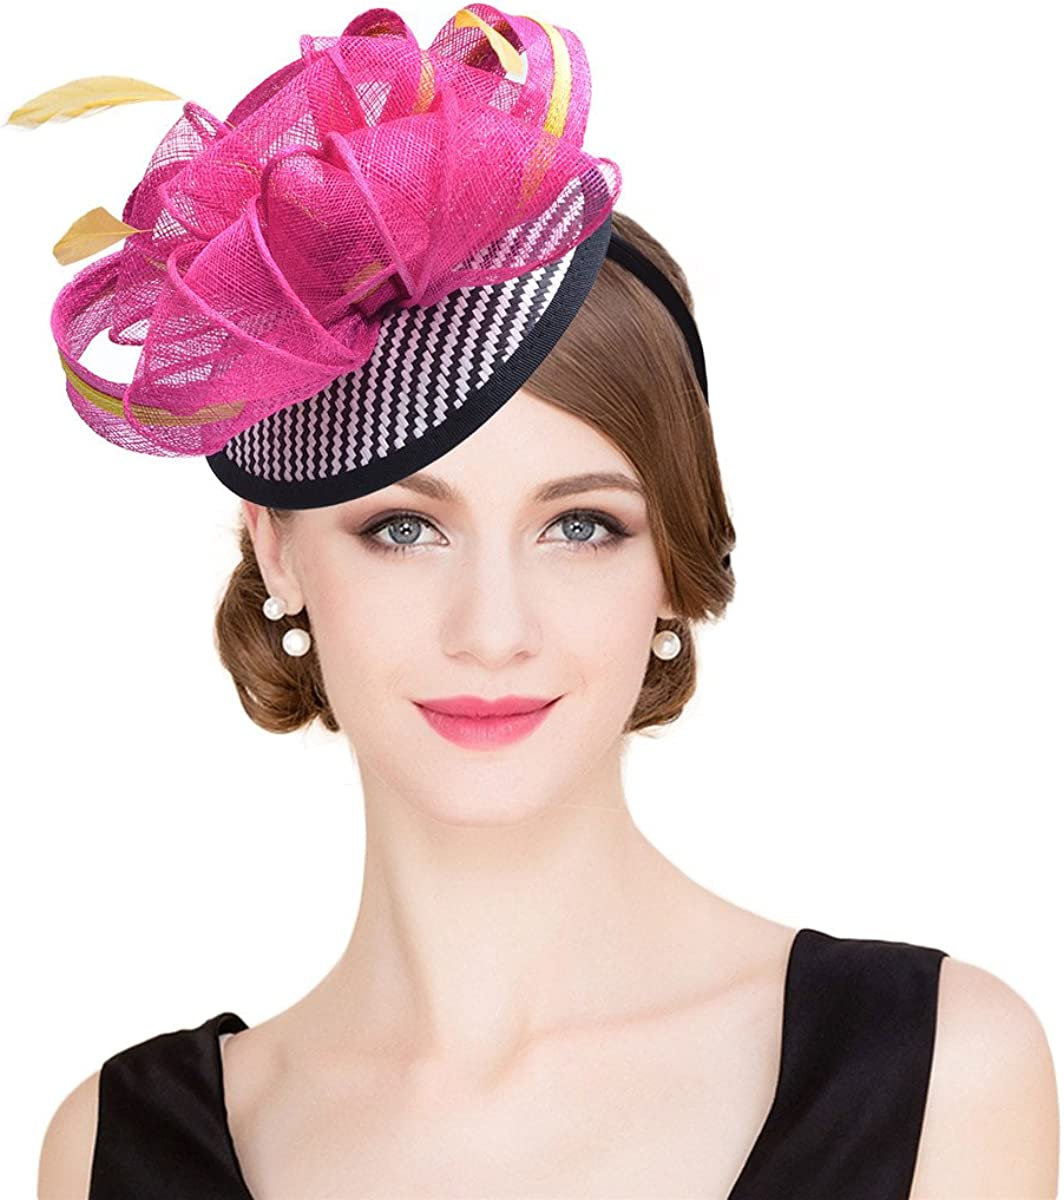 Lawliet Womens Sinamay Cocktail Fascinator Feather Derby Hat T216